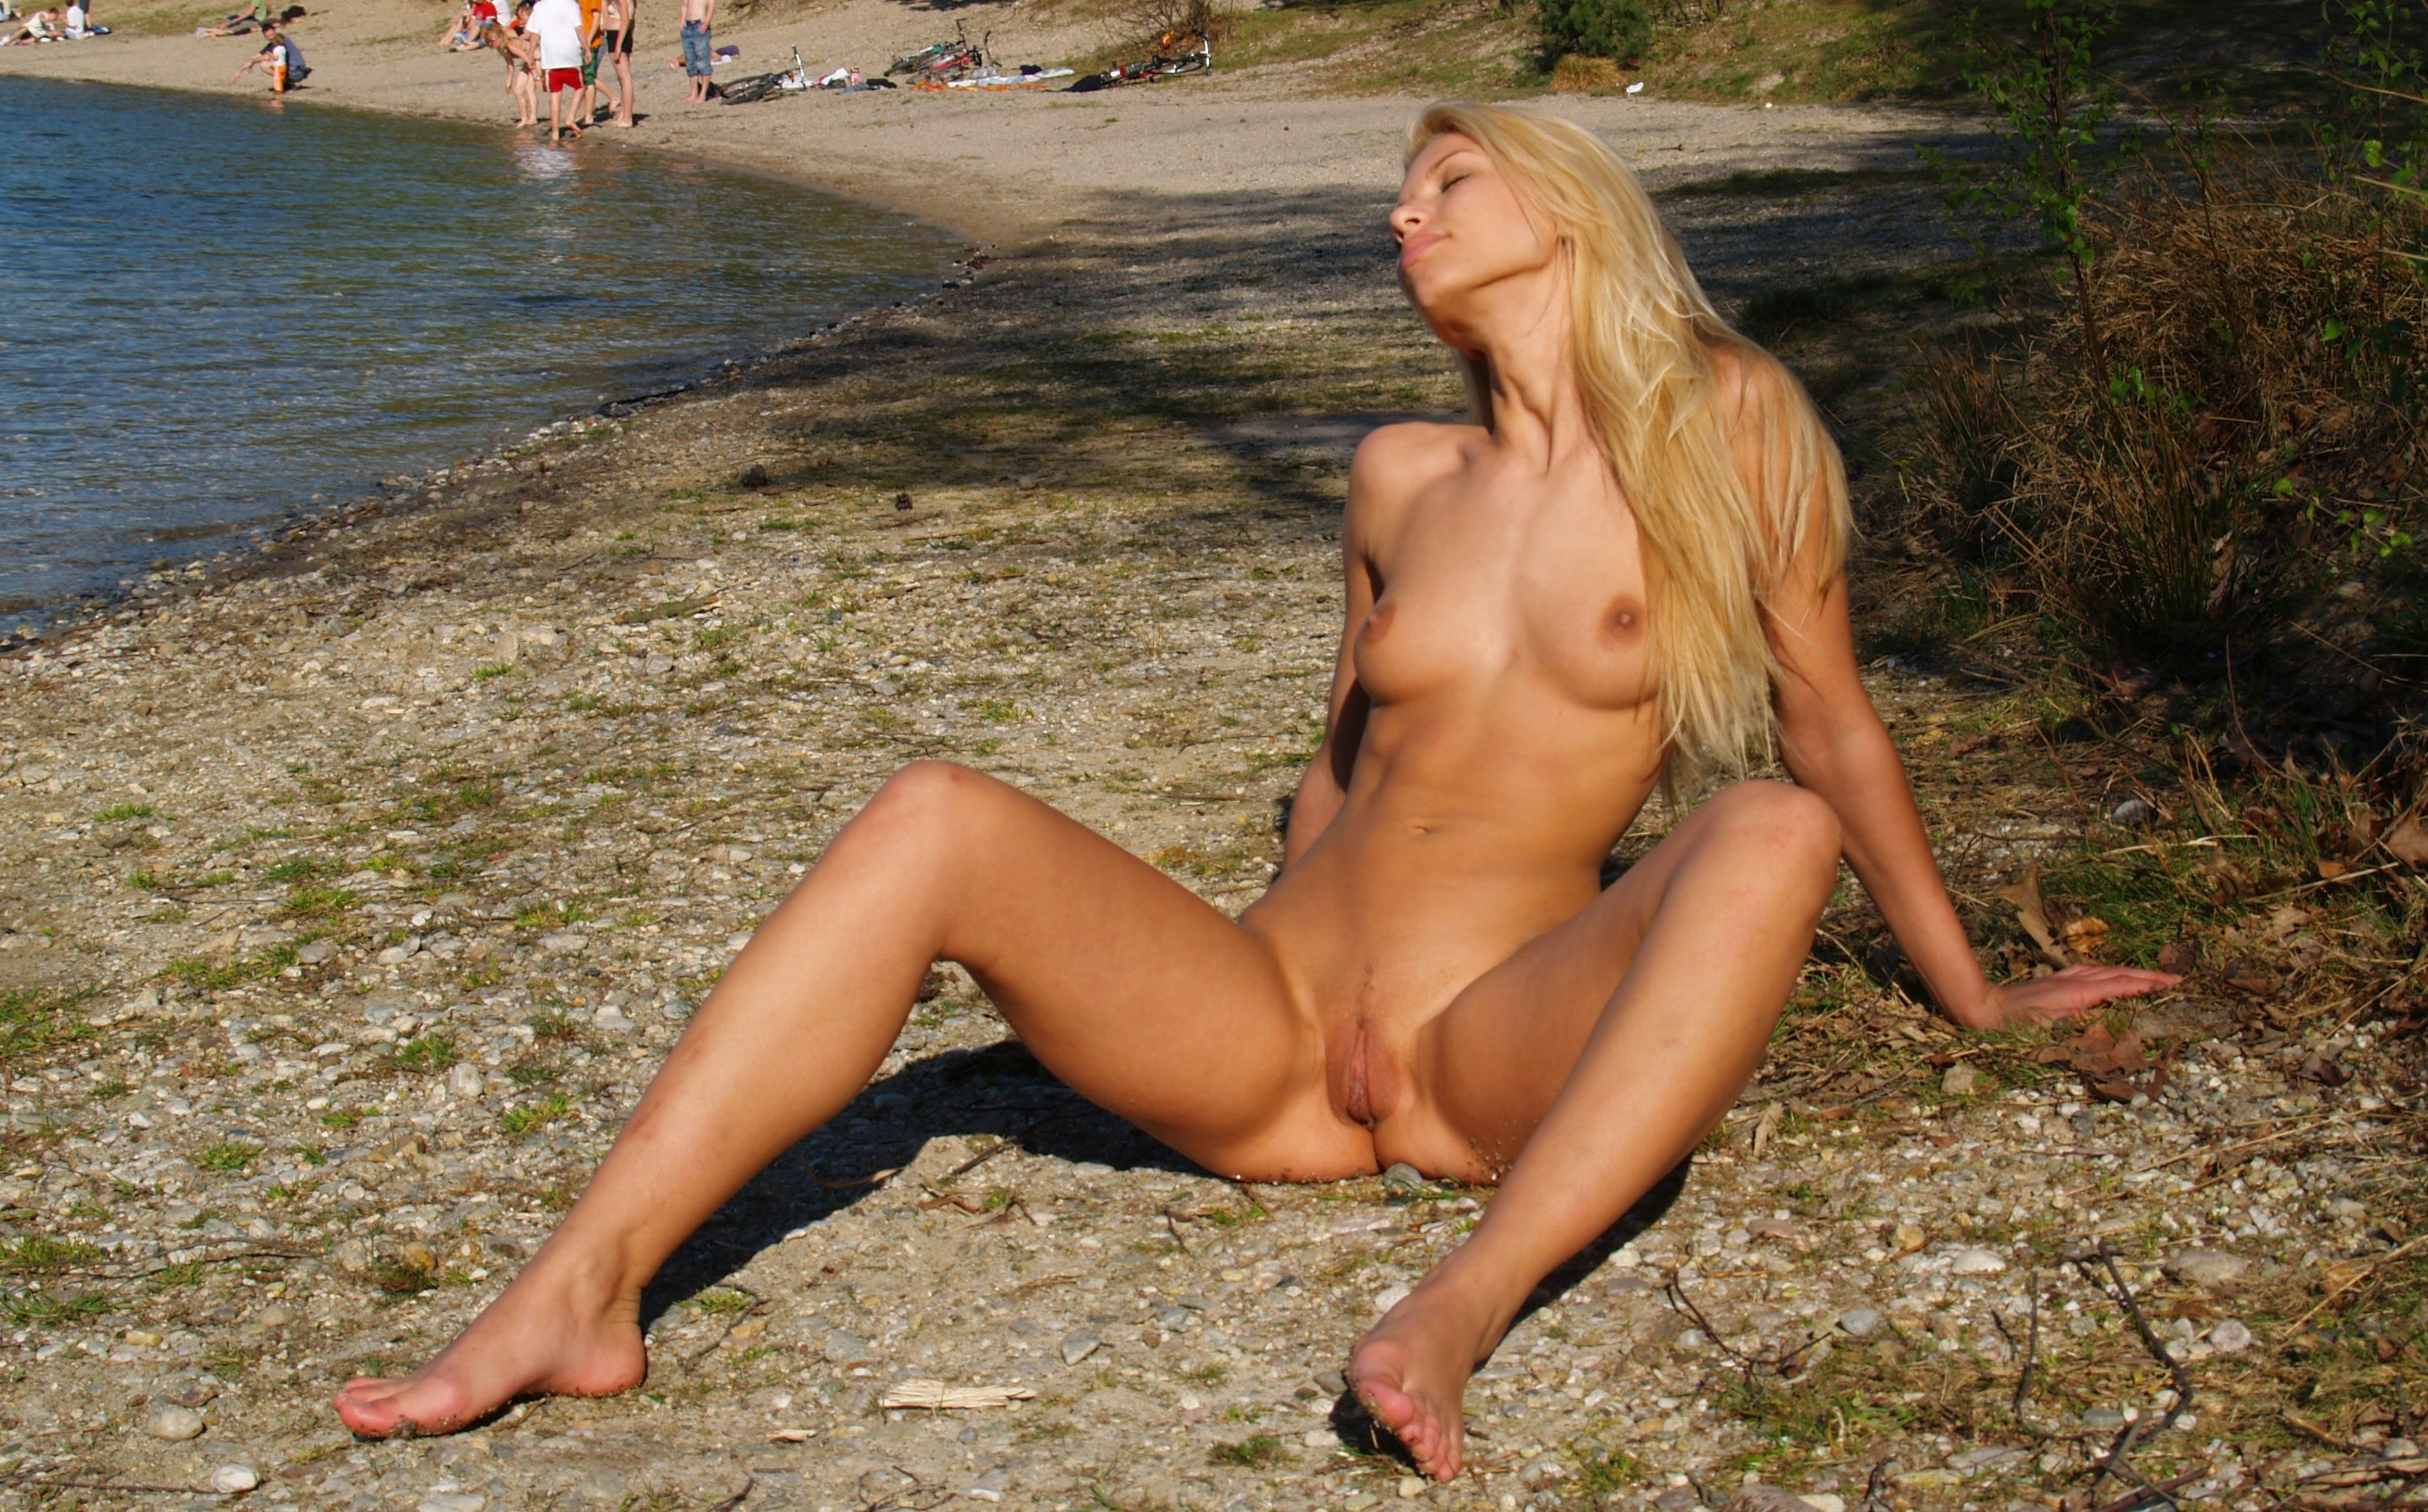 German nude beach girls are